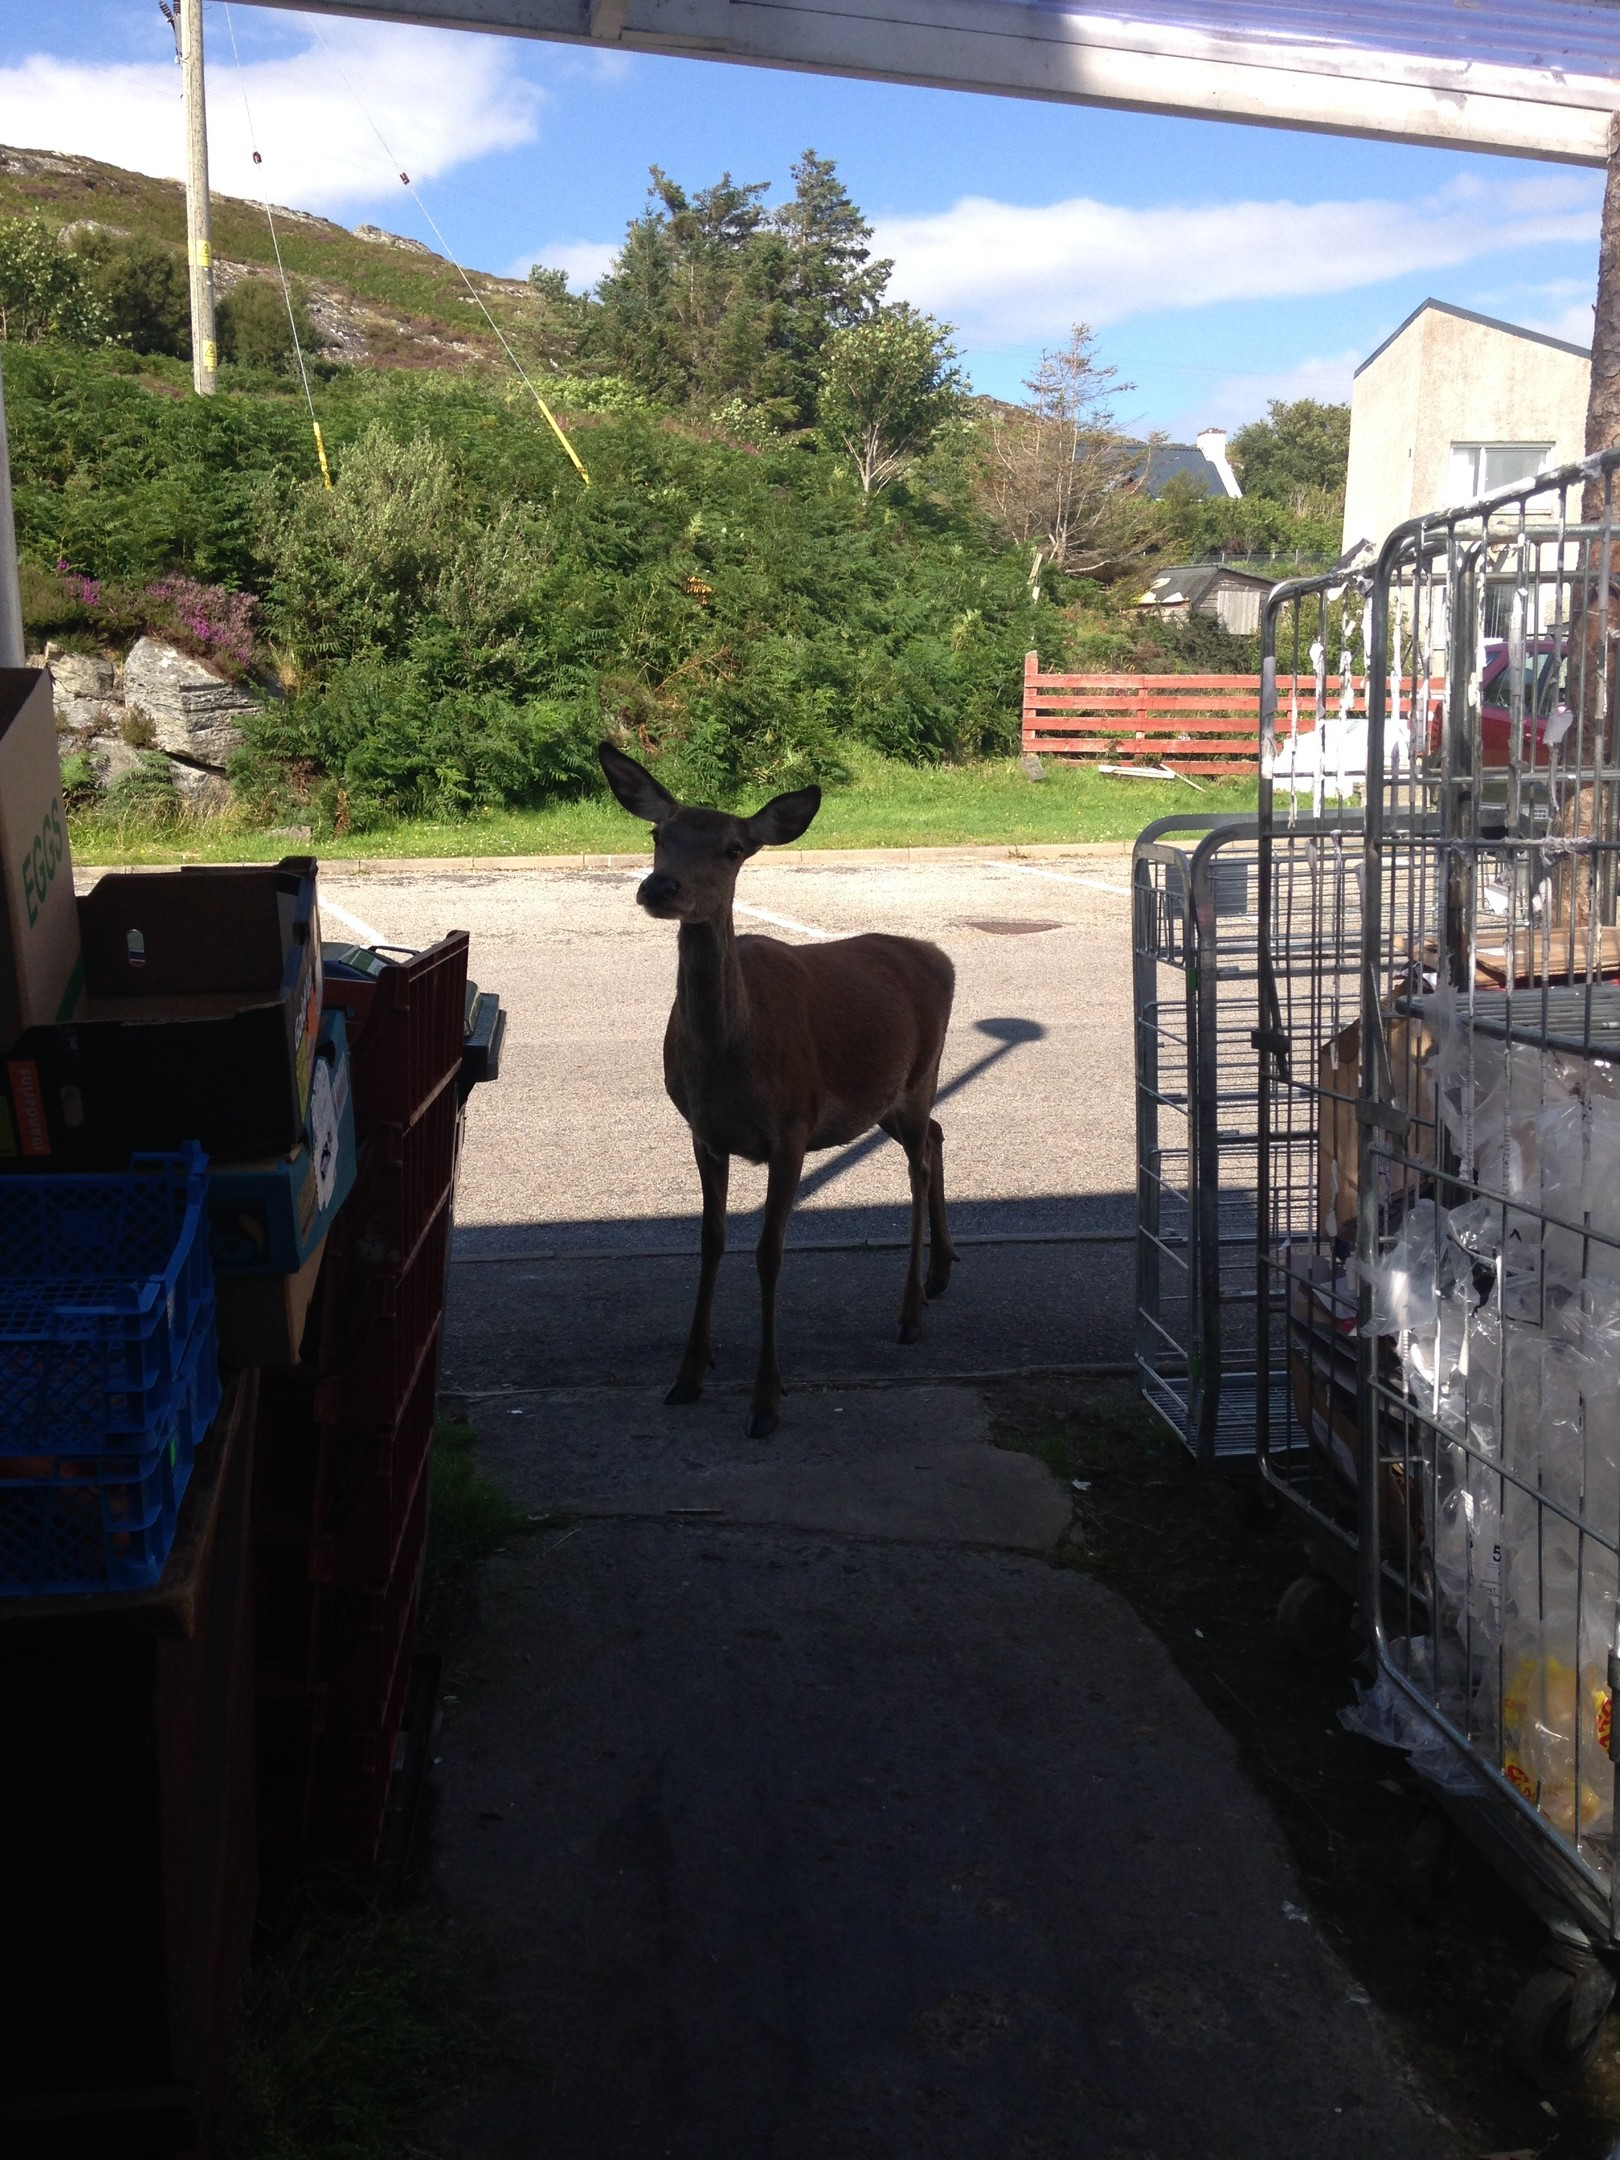 A deer makes a daring raid in the store area of a Highland shop